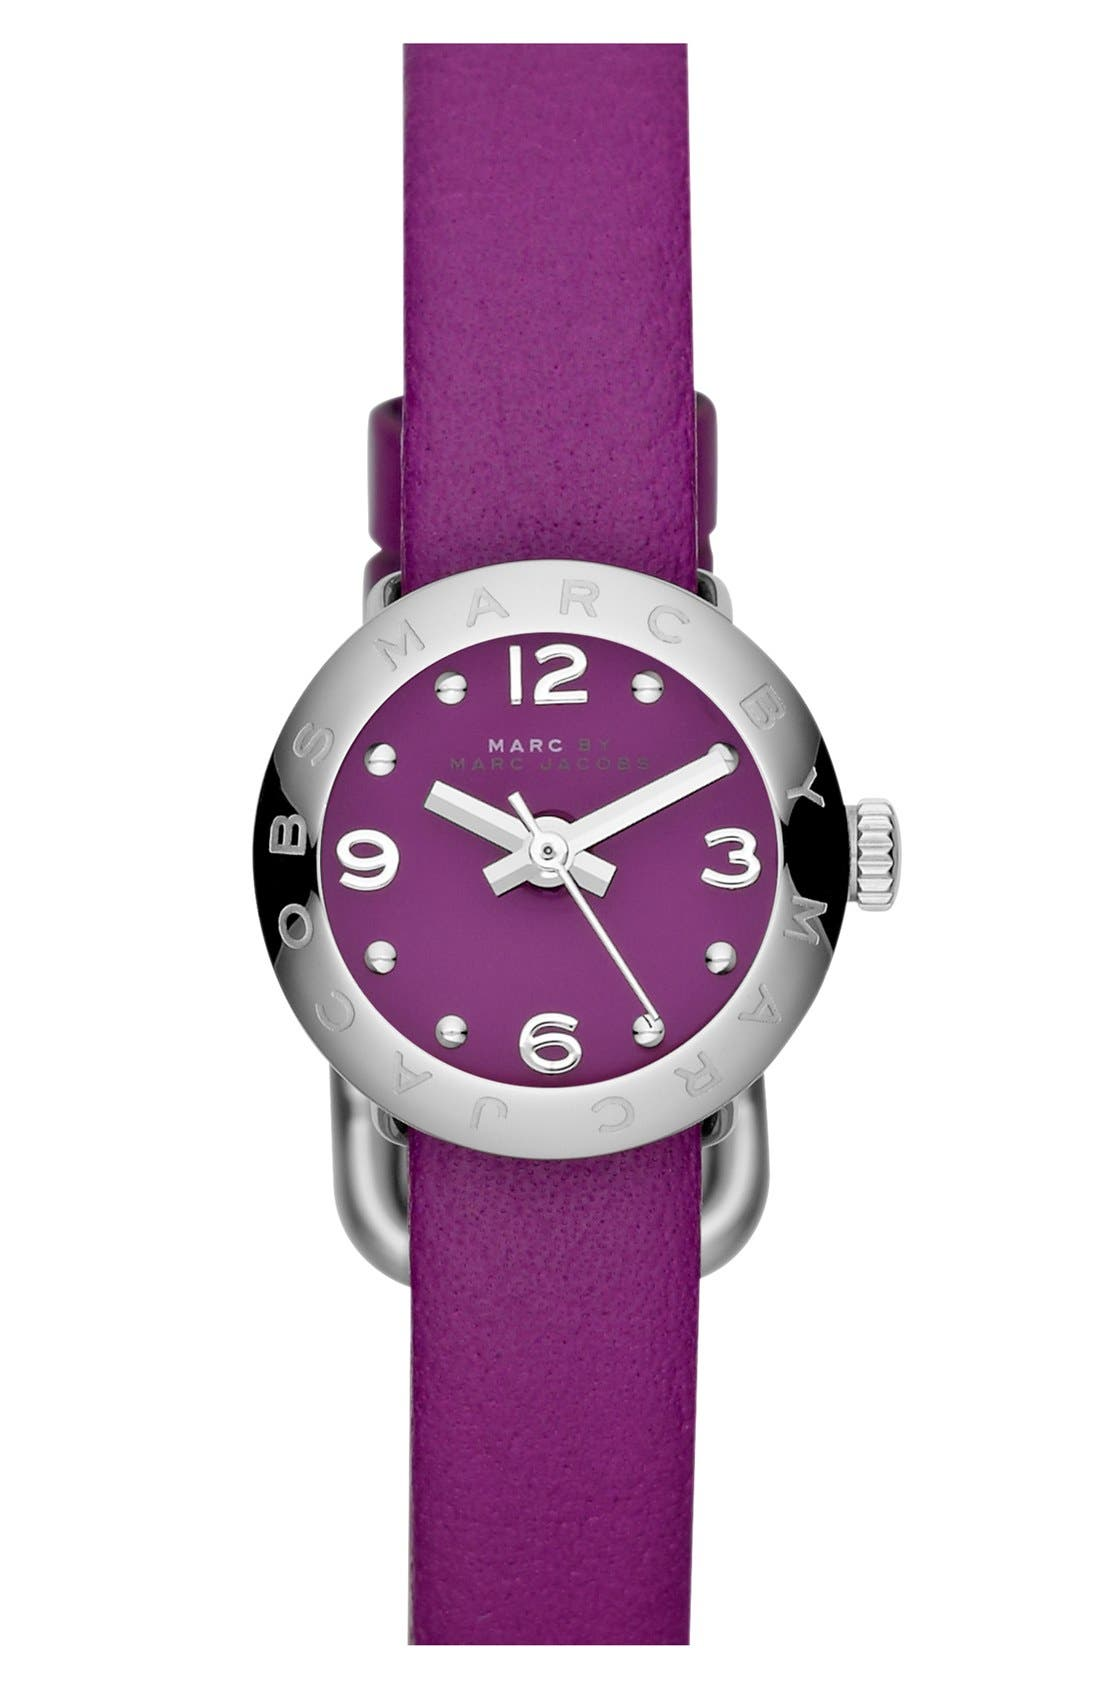 Alternate Image 1 Selected - MARC JACOBS 'Amy Dinky' Leather Strap Watch, 20mm